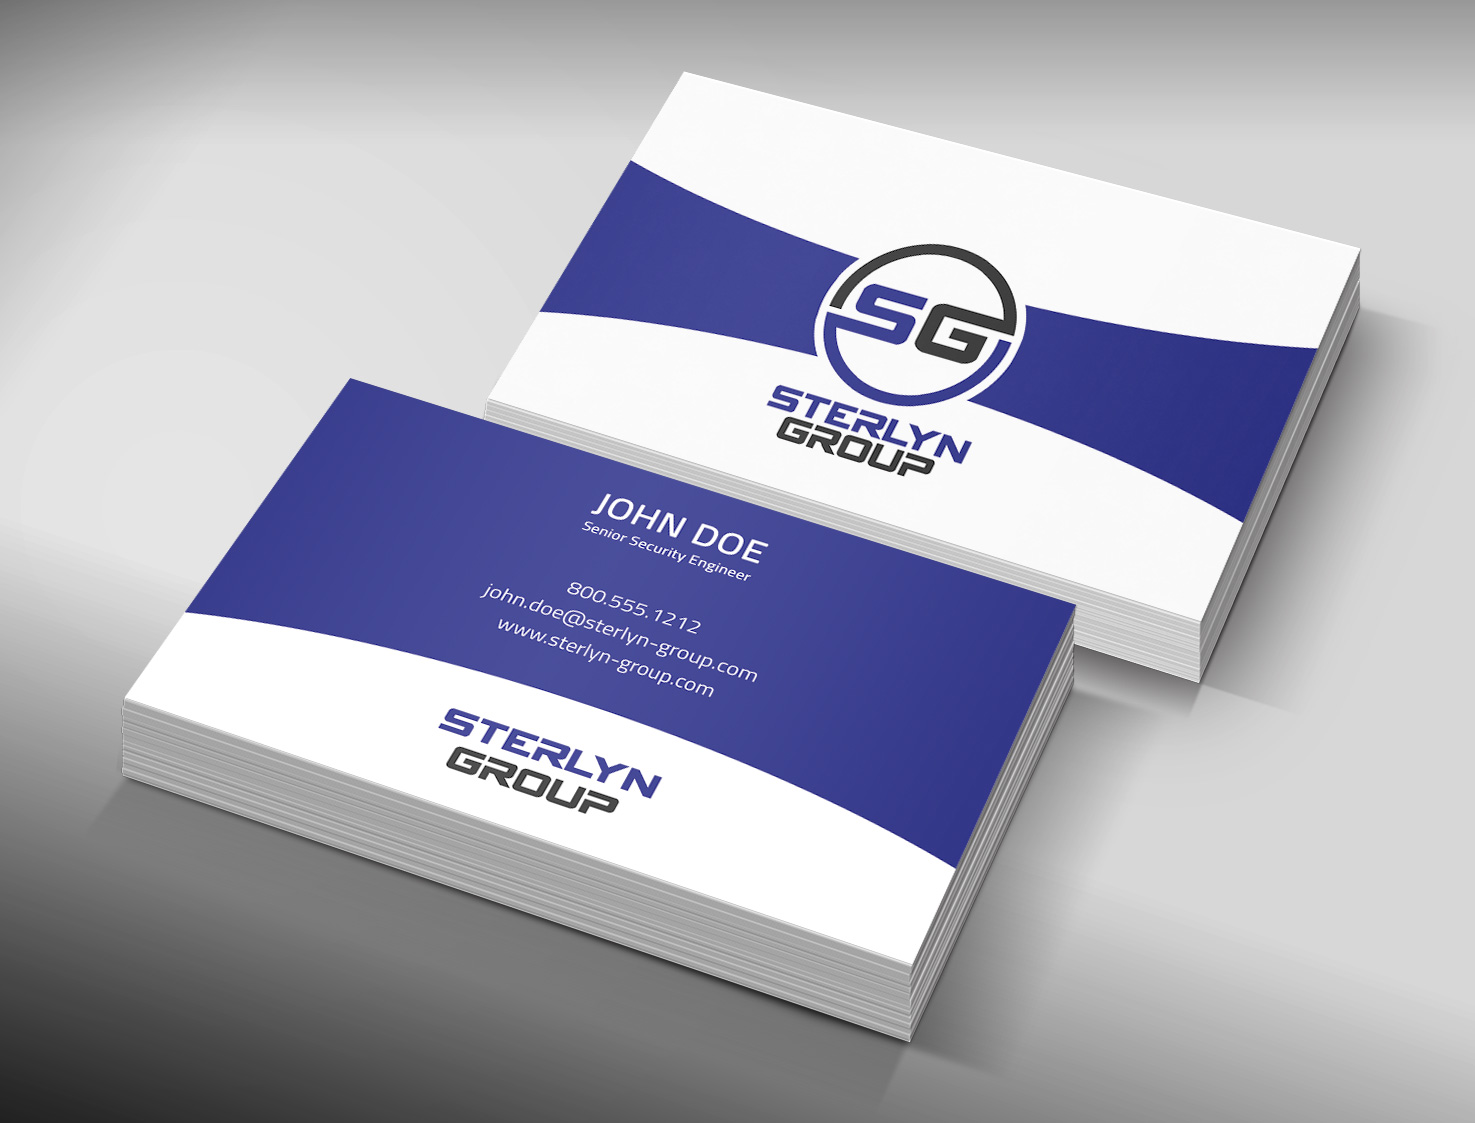 security business cards night vision security business card modern